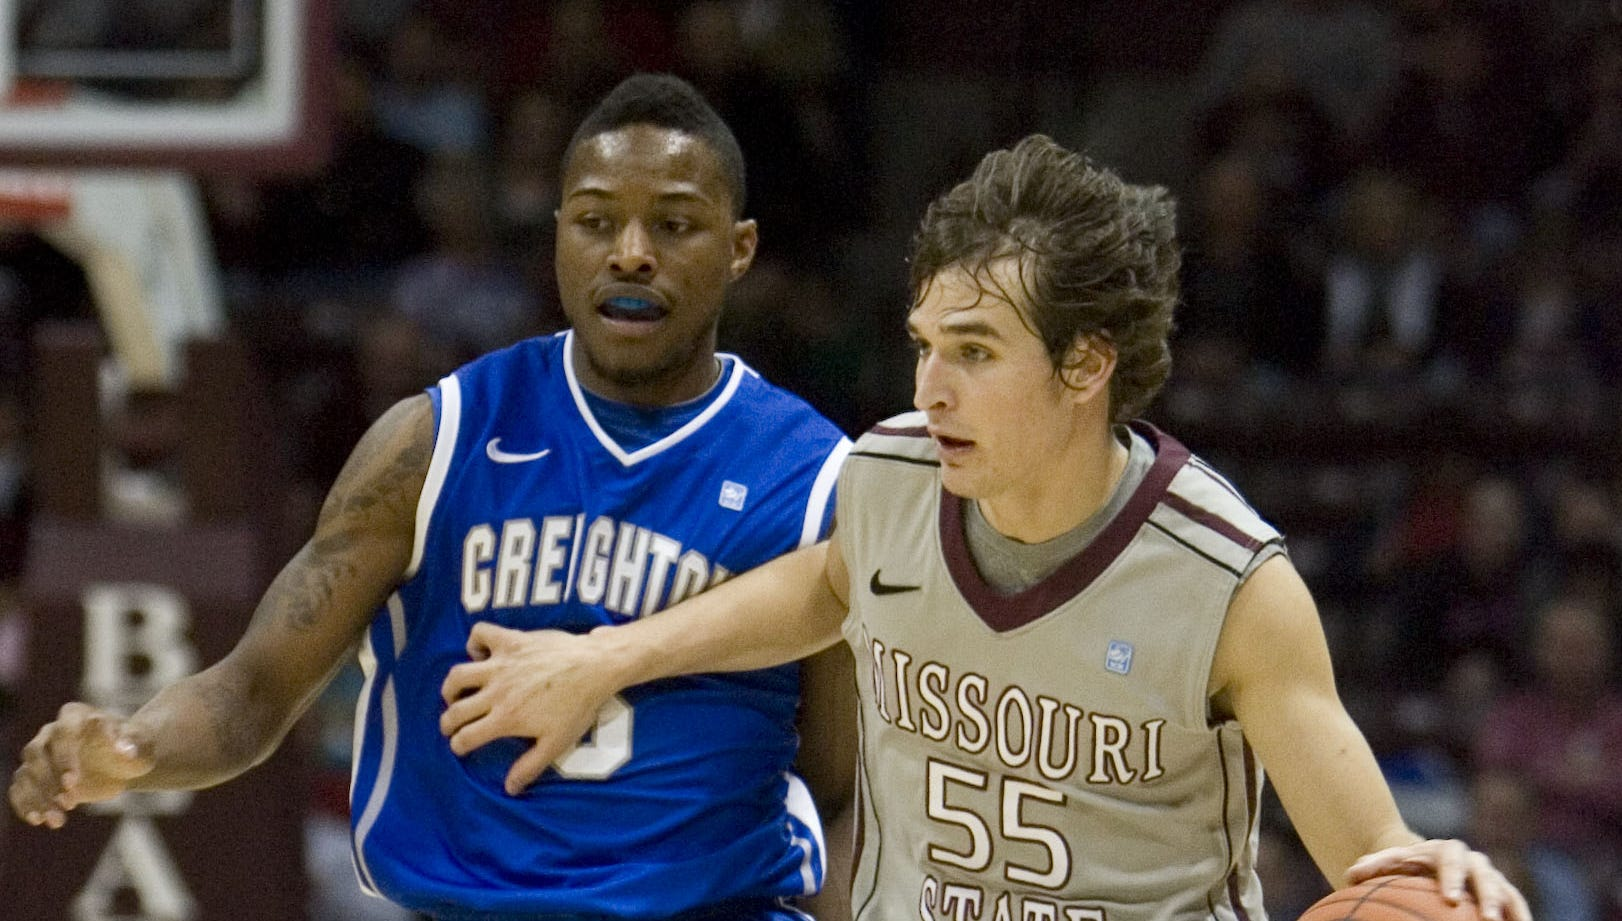 The Missouri State Bears take on the Creighton Bluejays at JQH Arena on Wednesday, Jan. 18, 2012.